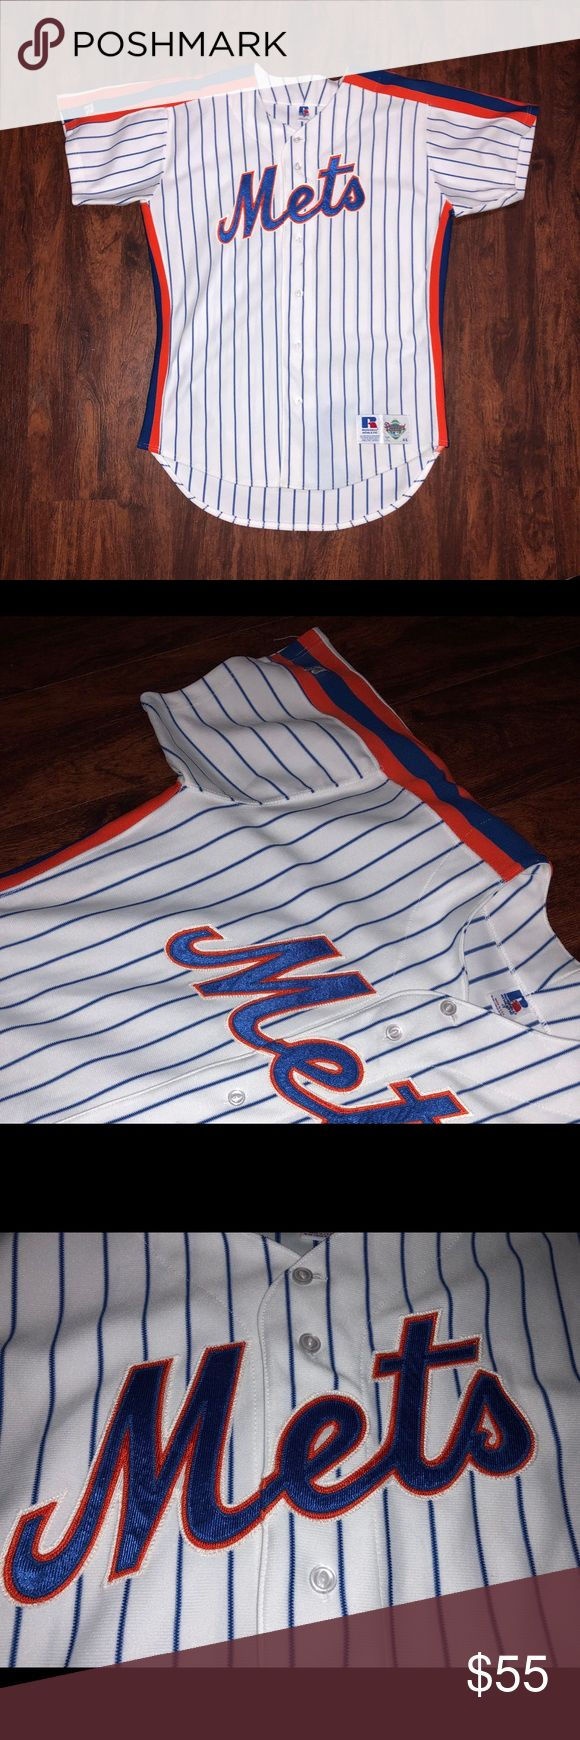 New New York Mets baseball MLB jersey Russell This is an original vintage Diamondallstar baseball jersey by russell brand. Not many of these are around especially that are new. Look at the pinstripe just beautiful. Let's go NEWYORKMETS ❗️ don't miss out on this great buy, for such a great price. Be ready and Get fresh this summer 😎keep it cool.  Happy buying and thank you Russell Shirts Tees - Short Sleeve